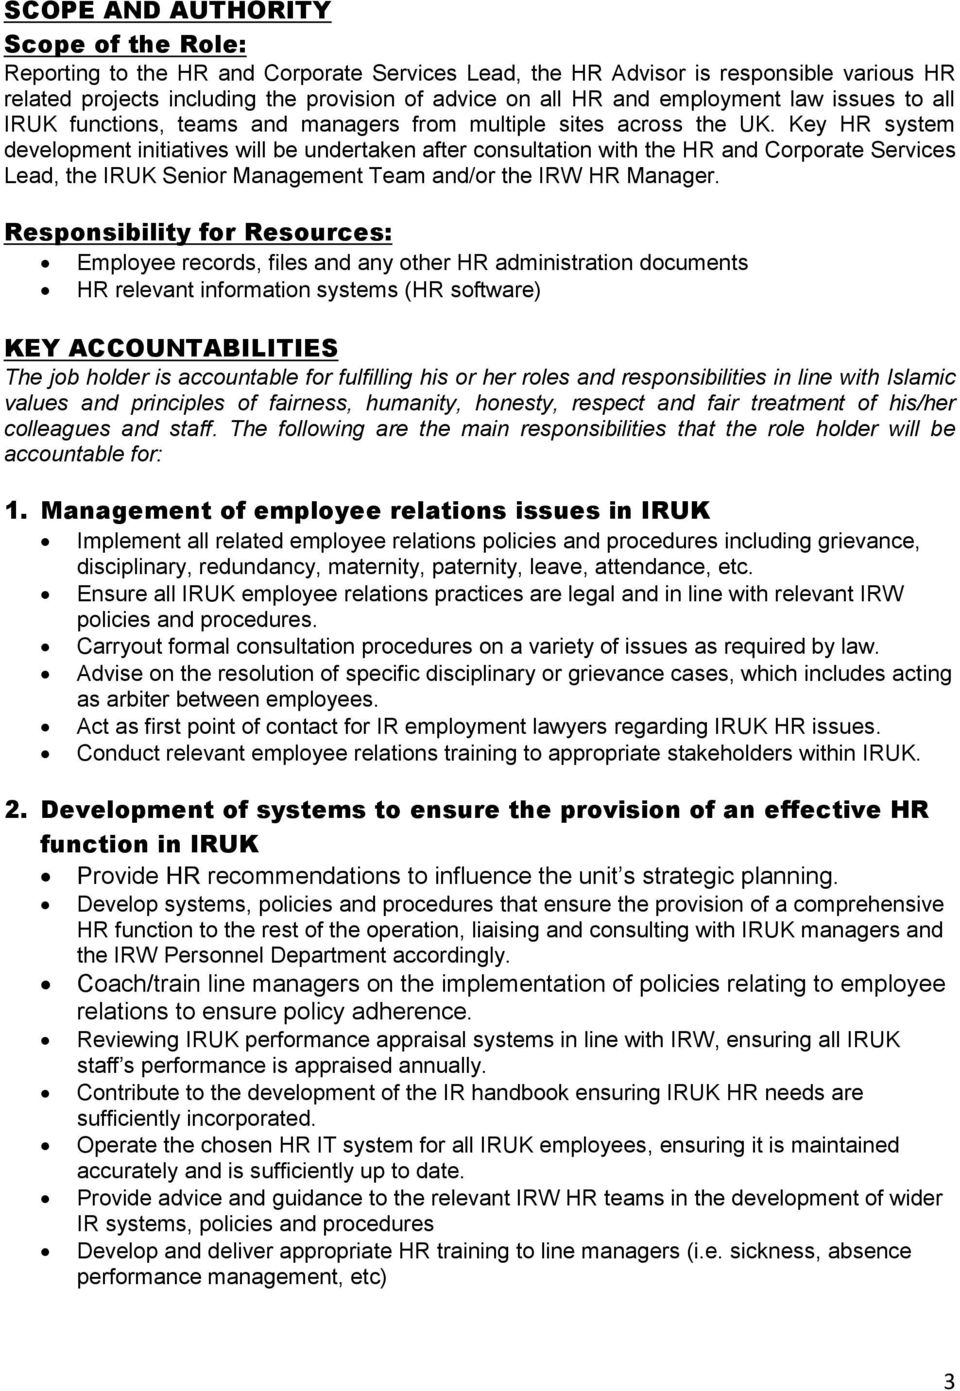 Key HR system development initiatives will be undertaken after consultation with the HR and Corporate Services Lead, the IRUK Senior Management Team and/or the IRW HR Manager.